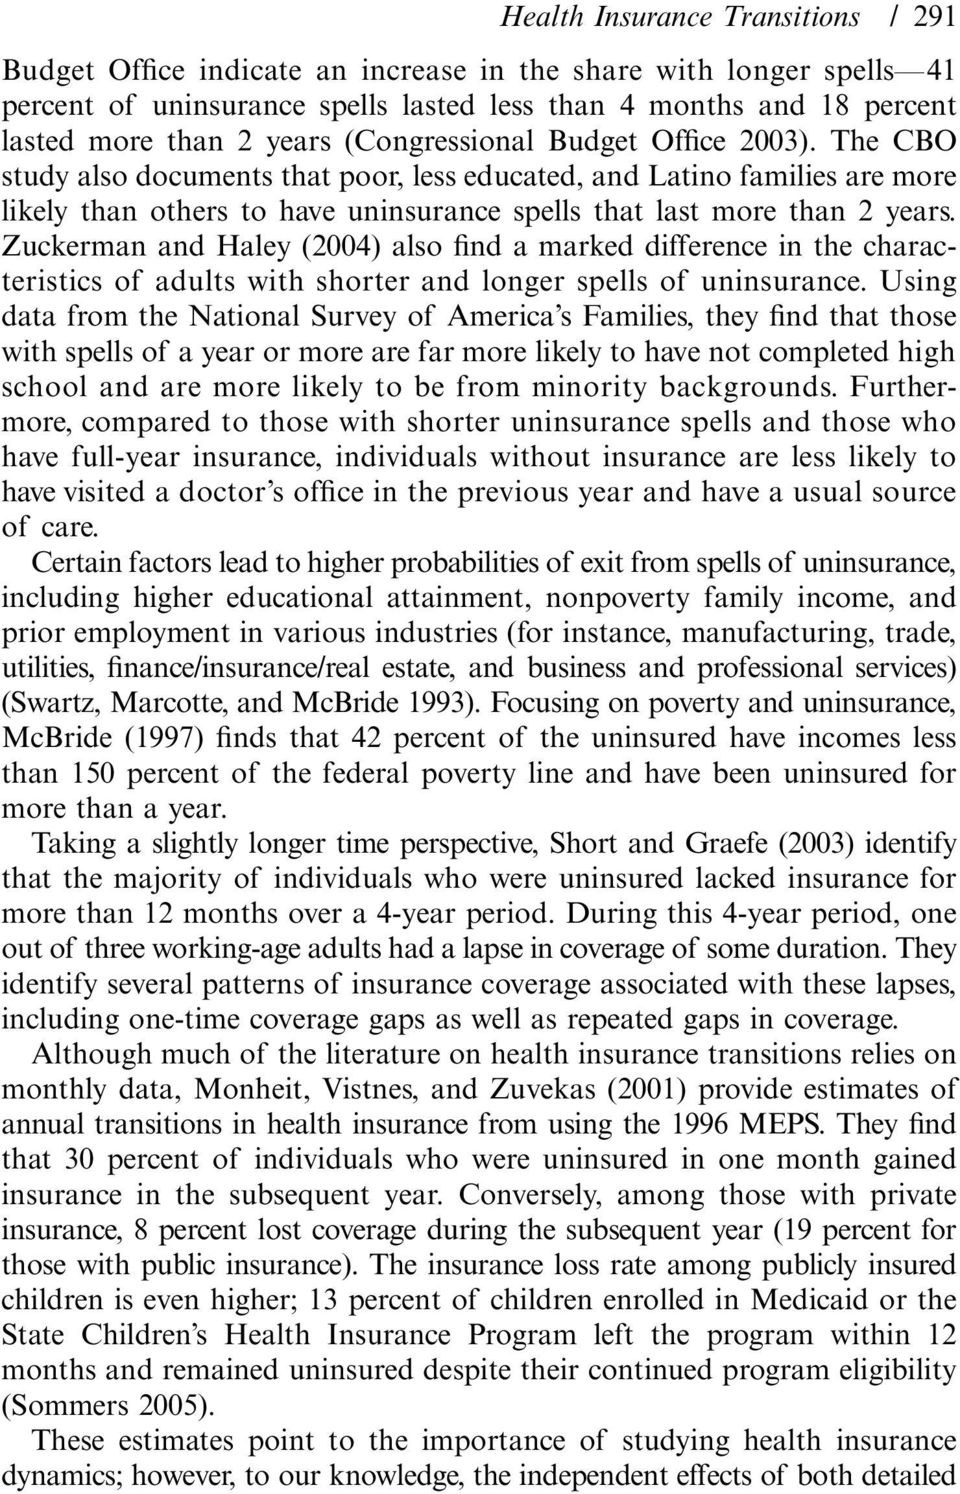 Zuckerman and Haley (2004) also find a marked difference in the characteristics of adults with shorter and longer spells of uninsurance.